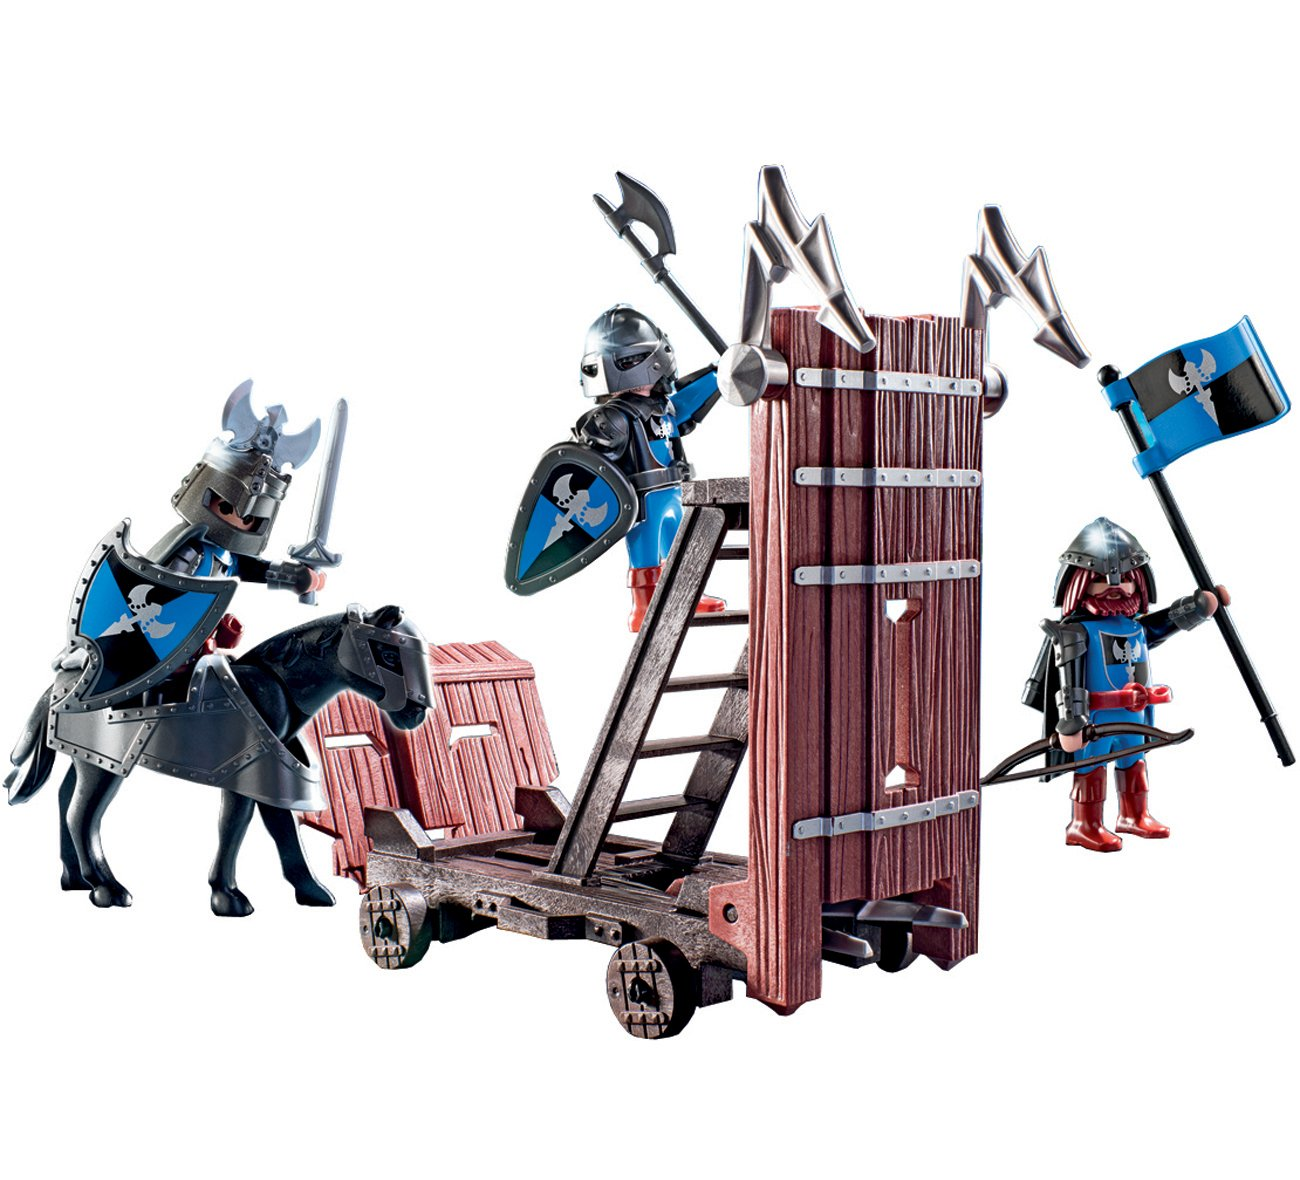 PLAYMOBIL Blue Knights with Battering Ram